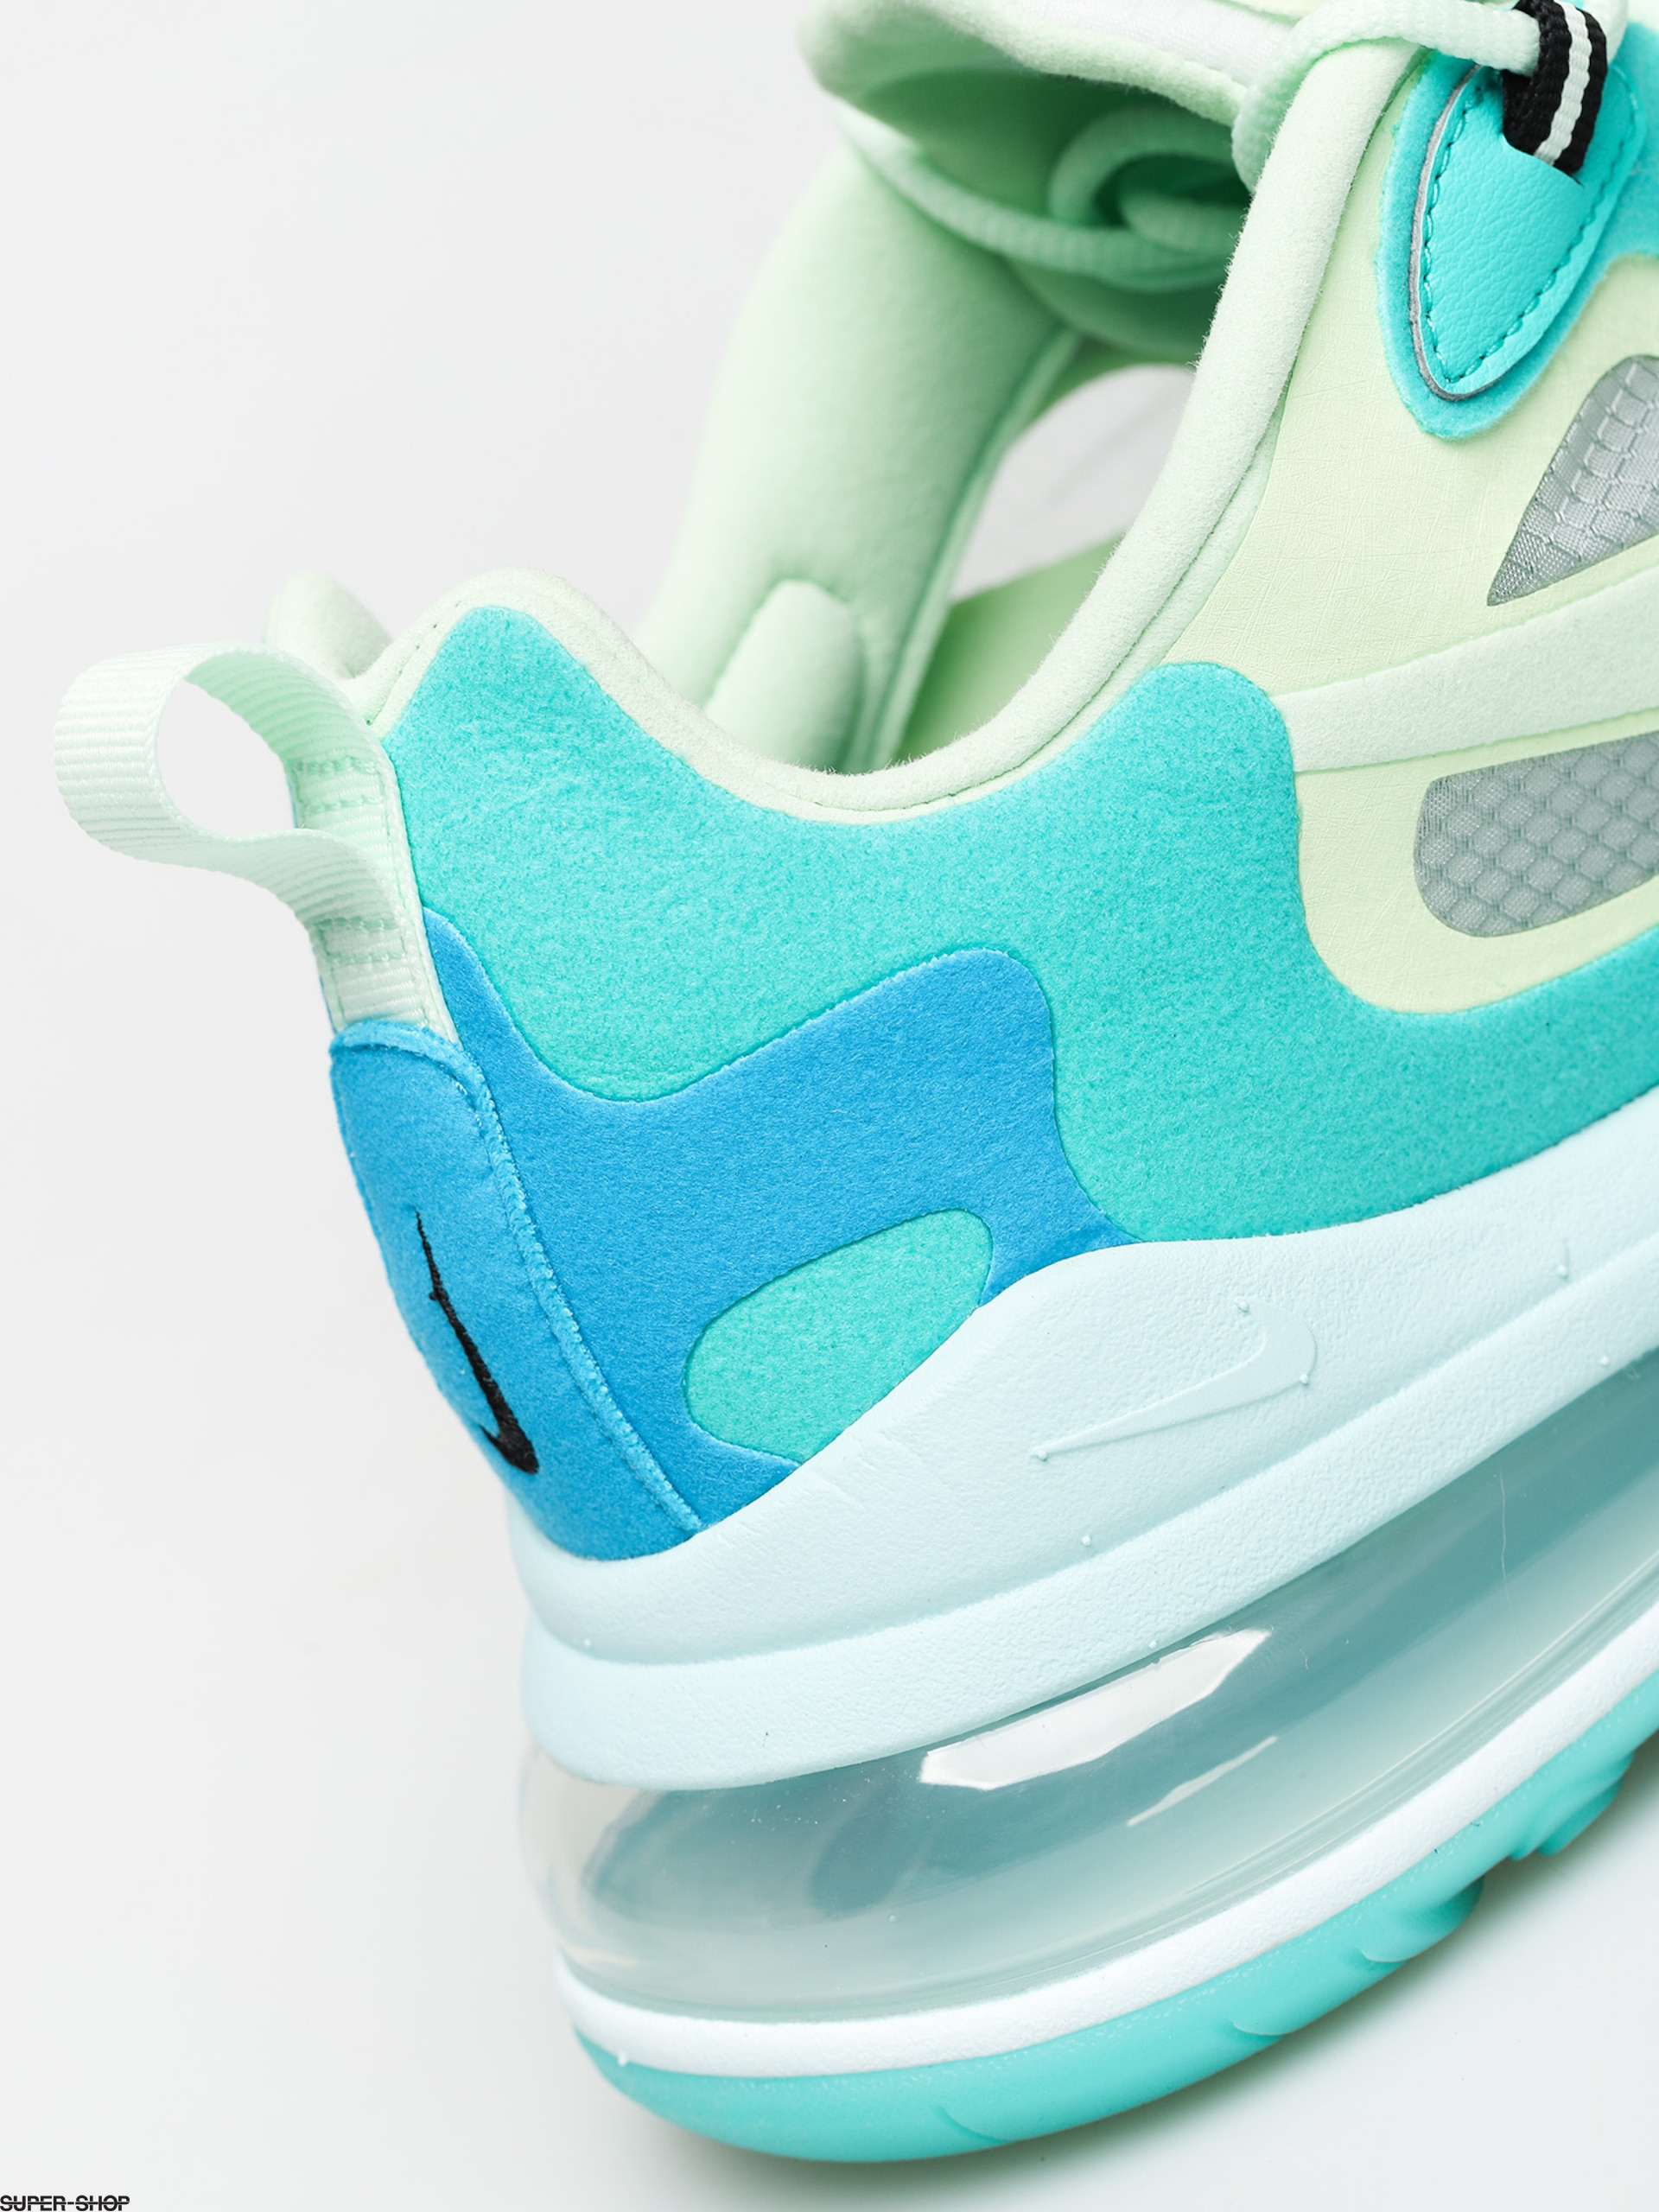 Nike Air Max 270 React Shoes (hyper jadefrosted spruce barely volt)